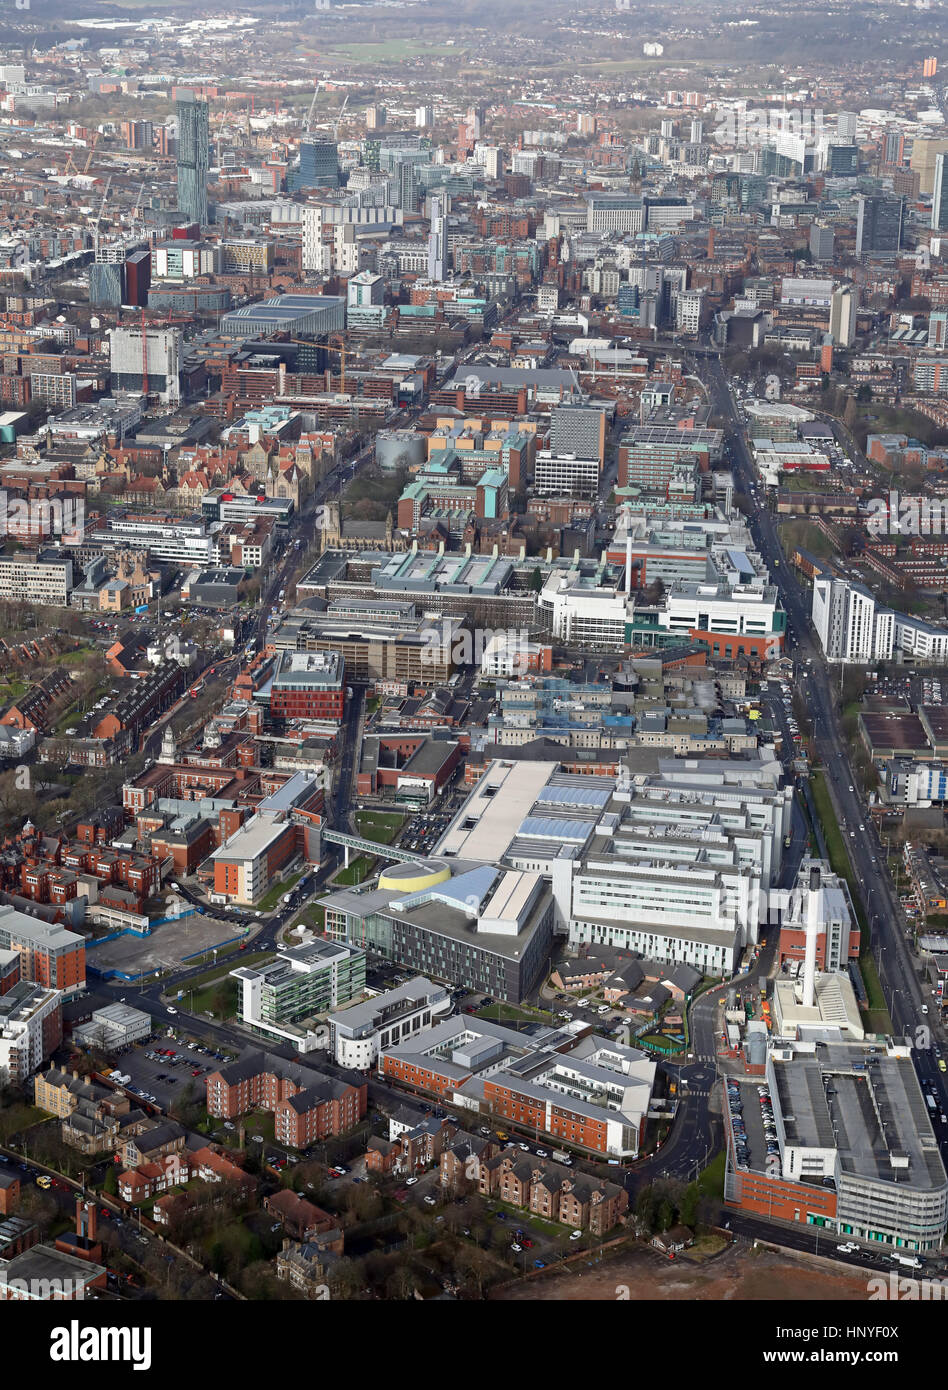 aerial view of St Marys Hospital & Manchester Royal Infirmary, UK - Stock Image